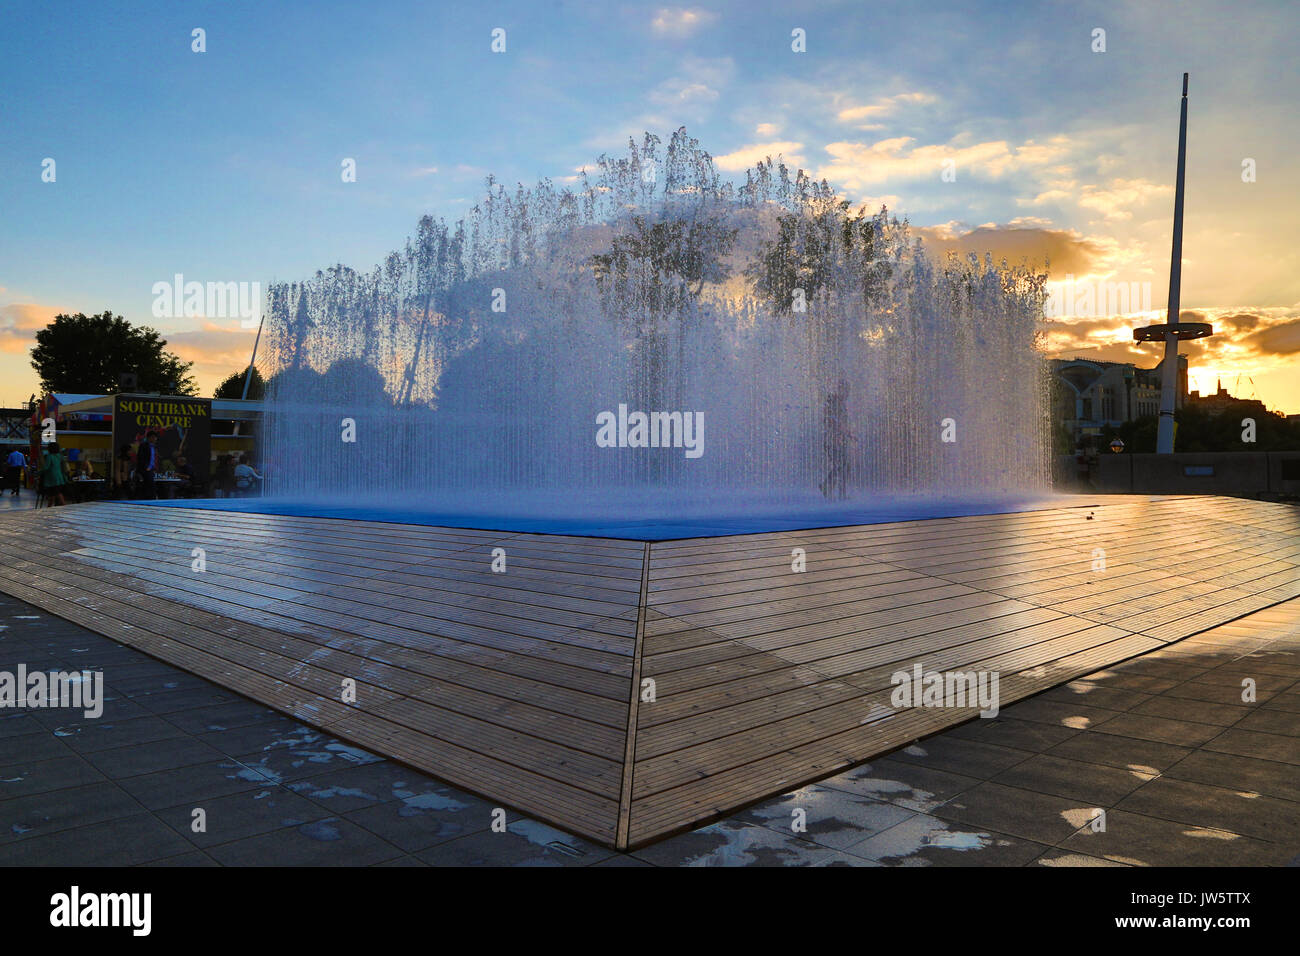 Jeppe Hein Appearing Rooms London